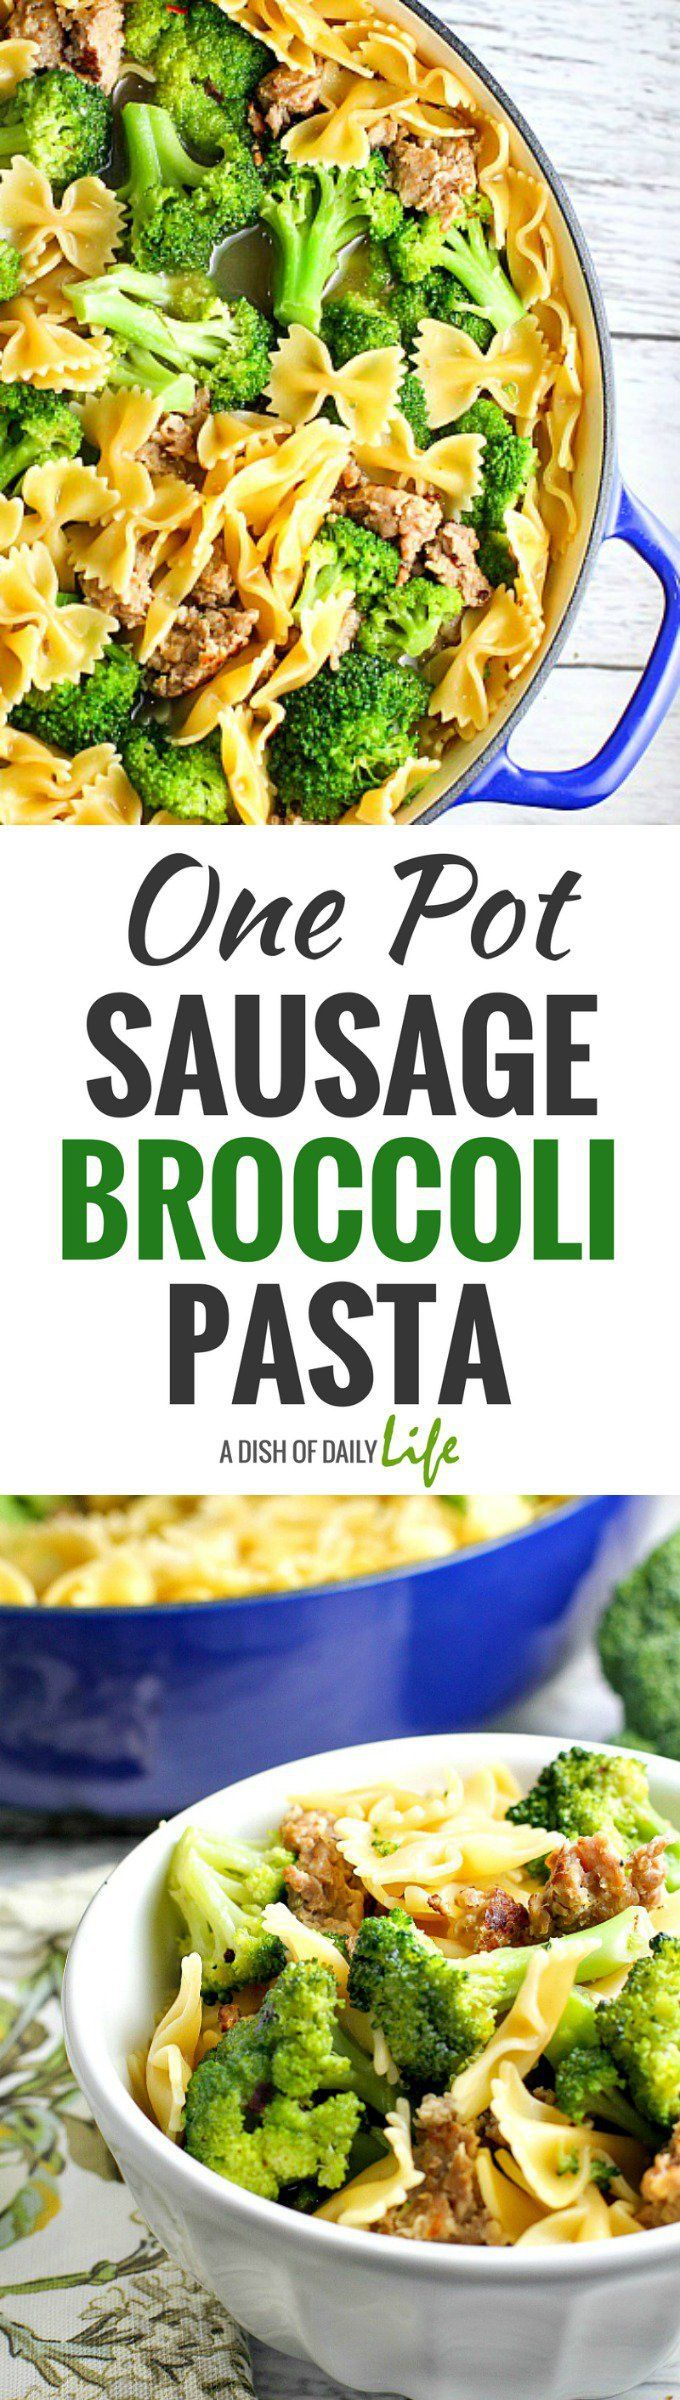 Best 25+ Easy recipes for one ideas on Pinterest | Quick and easy ...